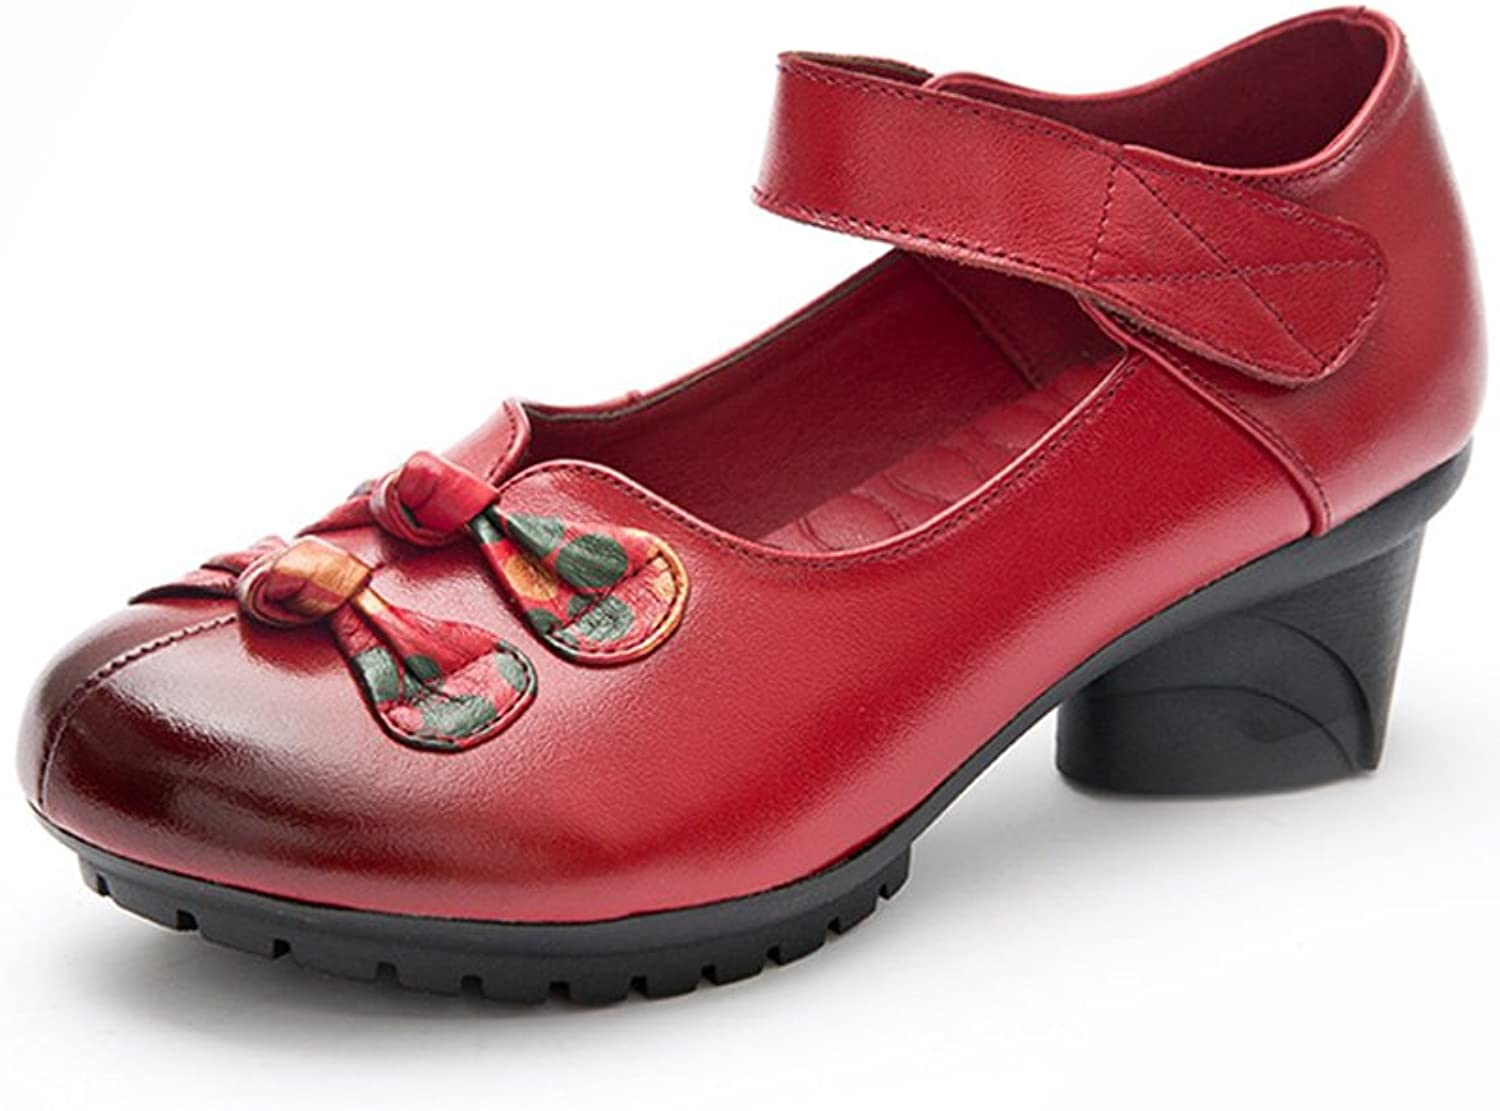 Duberess Women's Soft Real Leather Comfortable Round Toe Mid Heel Mary Jane shoes